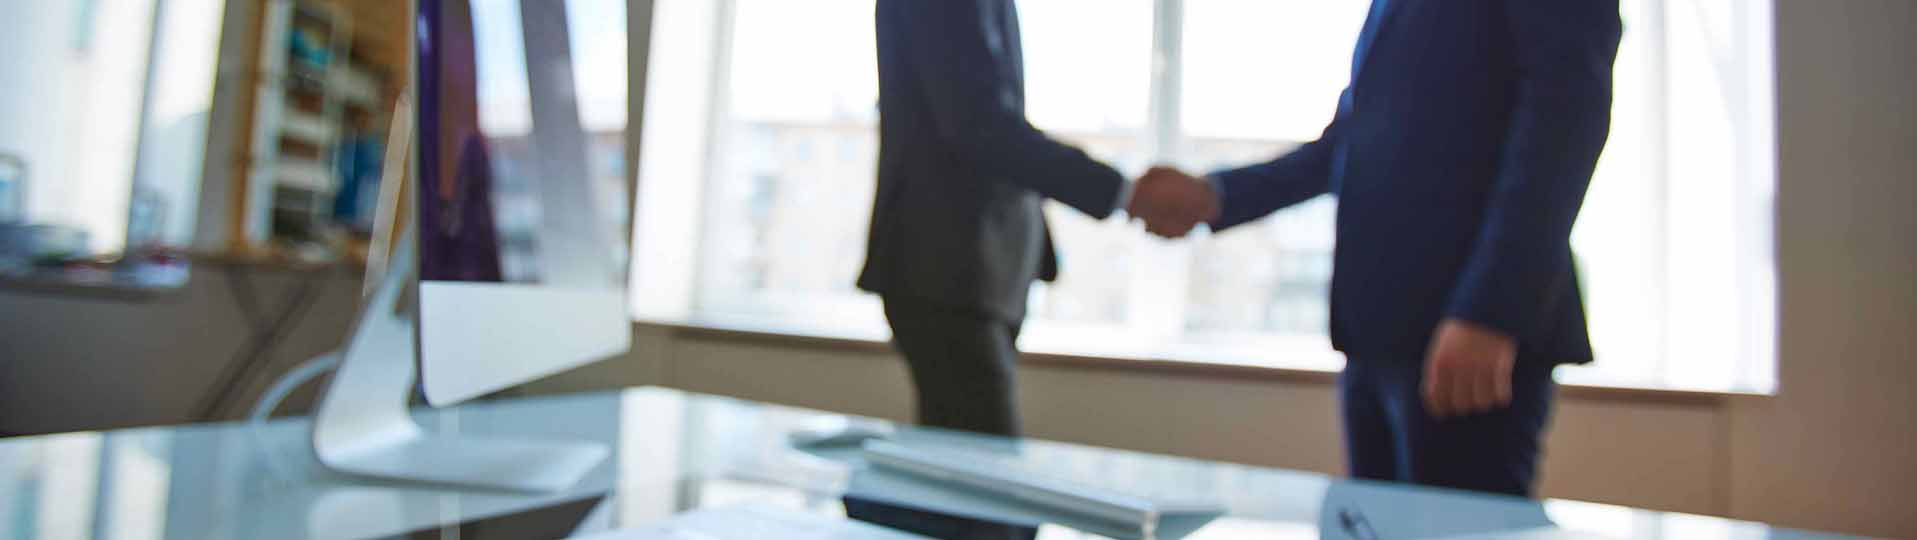 Investor Immigration Lawyers shaking hands